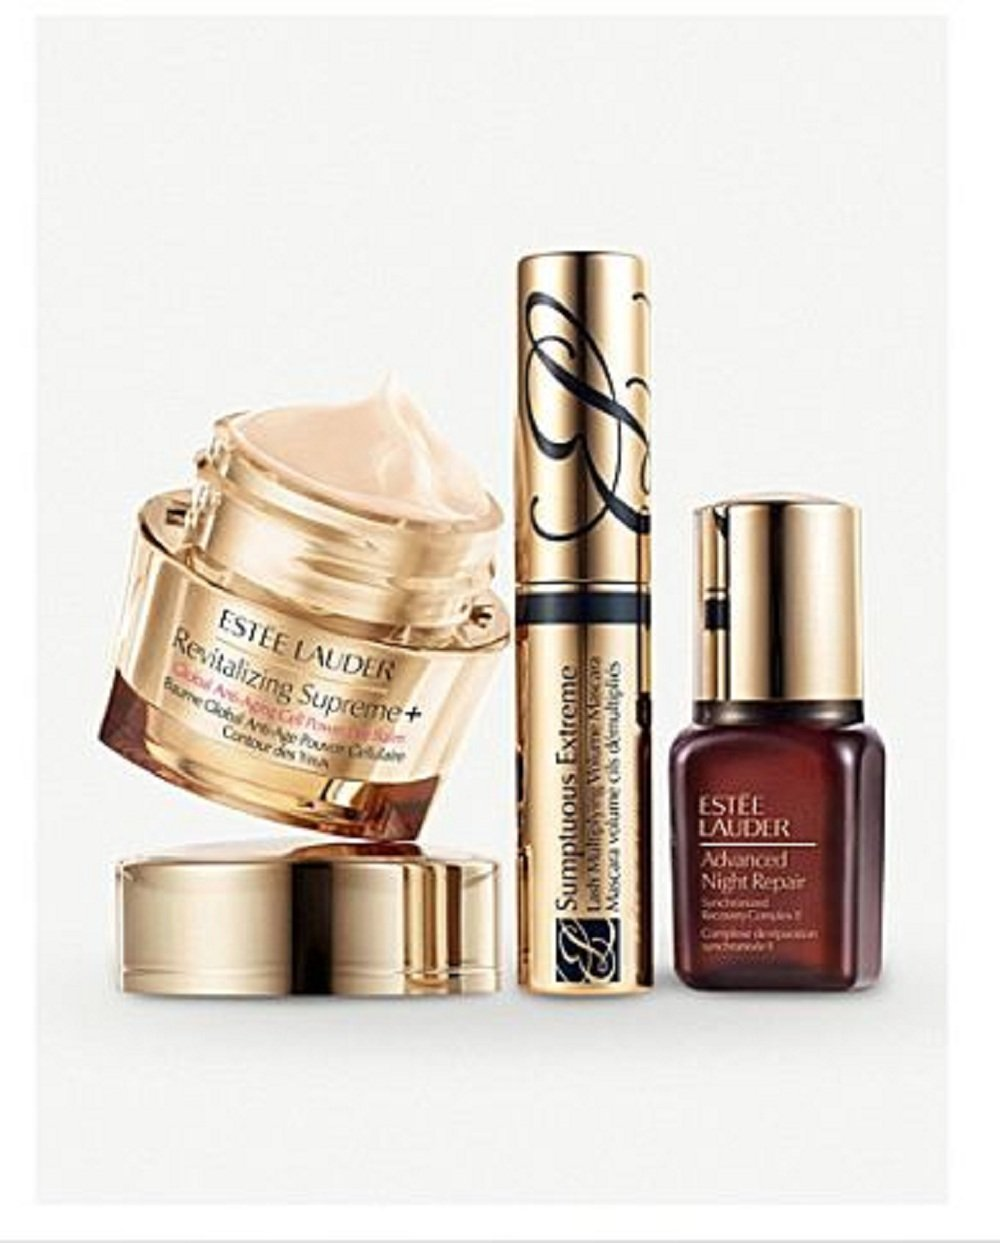 New Amazing Estee Lauder Revitalizing Supreme + Global Anti-Aging ...